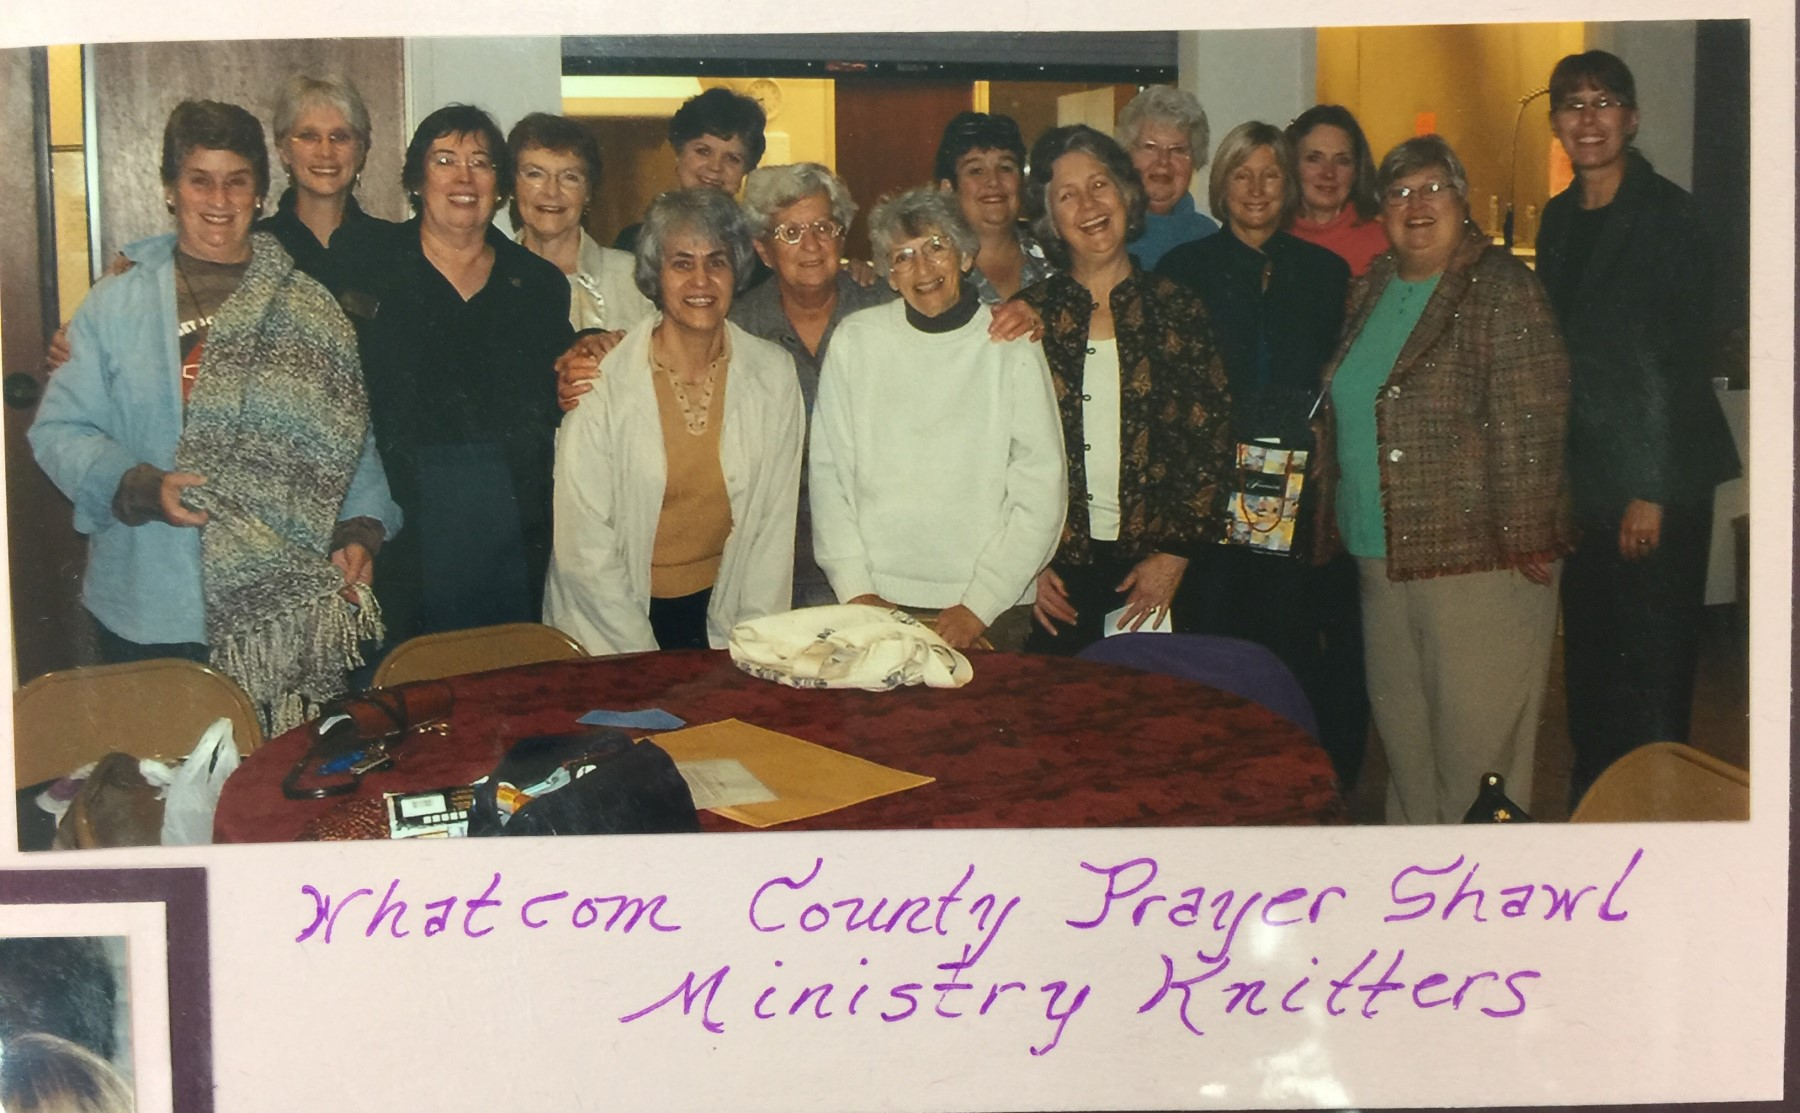 Jeanne Brotherton, FCN, with the Whatcom County Prayer Shawl Ministry Knitters